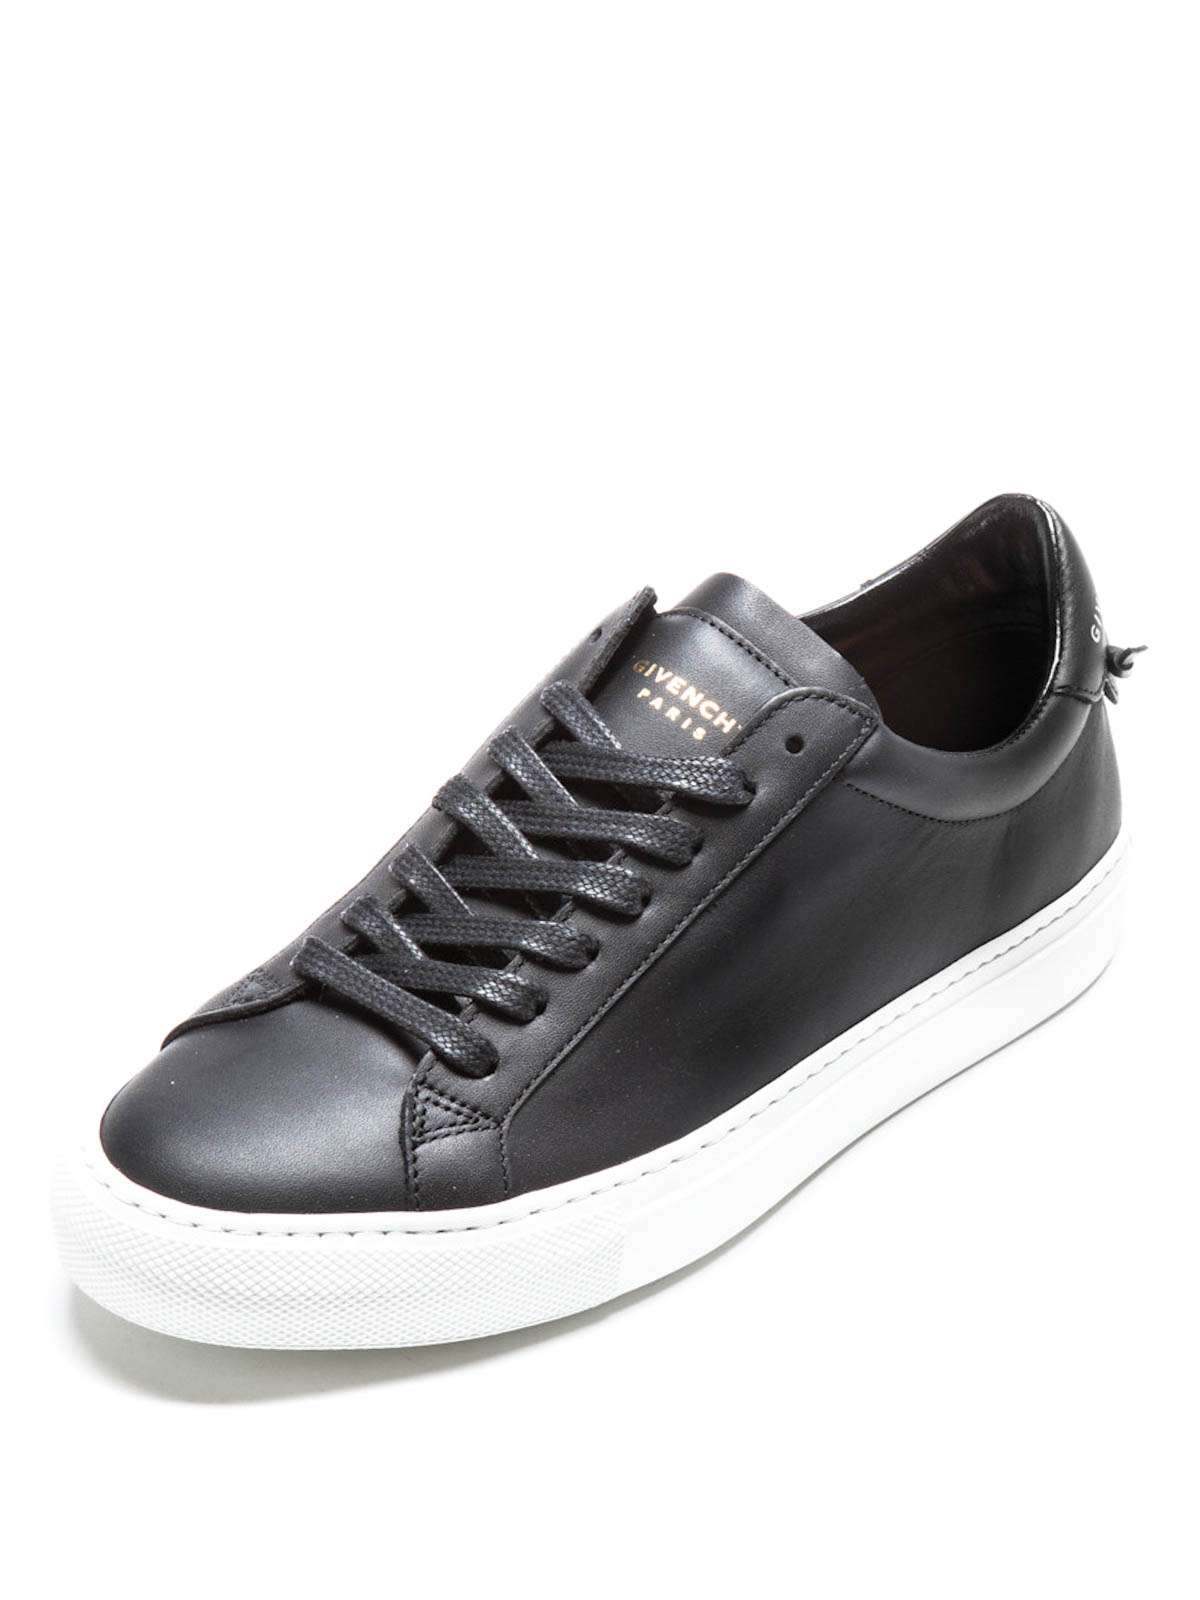 Givenchy Leather Trainers wCPl9LbMC